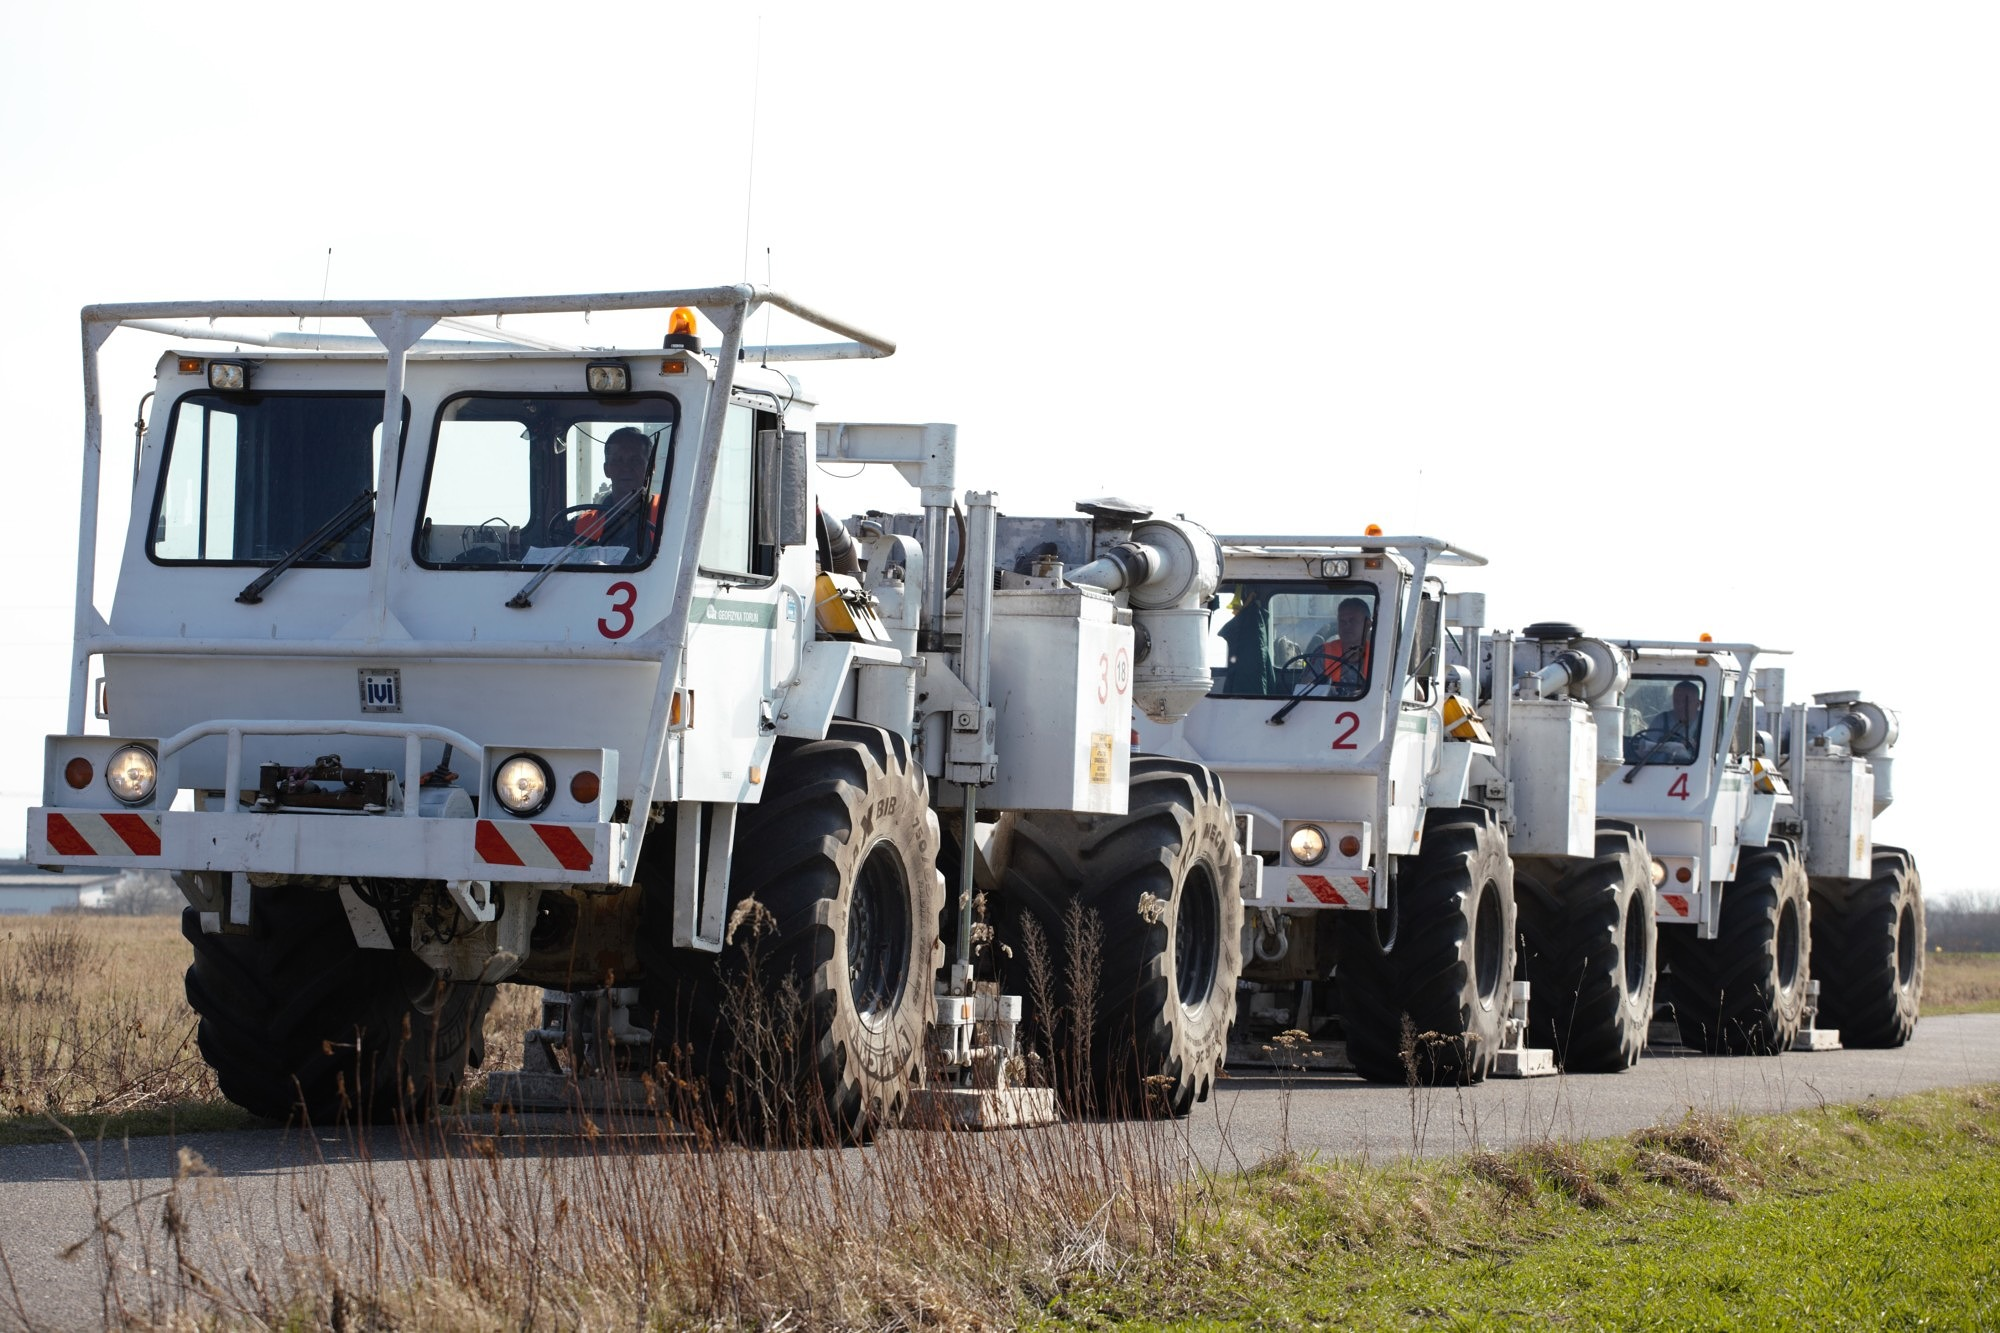 Measuring vehicles for seismic surveys. (Photo: Wolfgang Bauer)